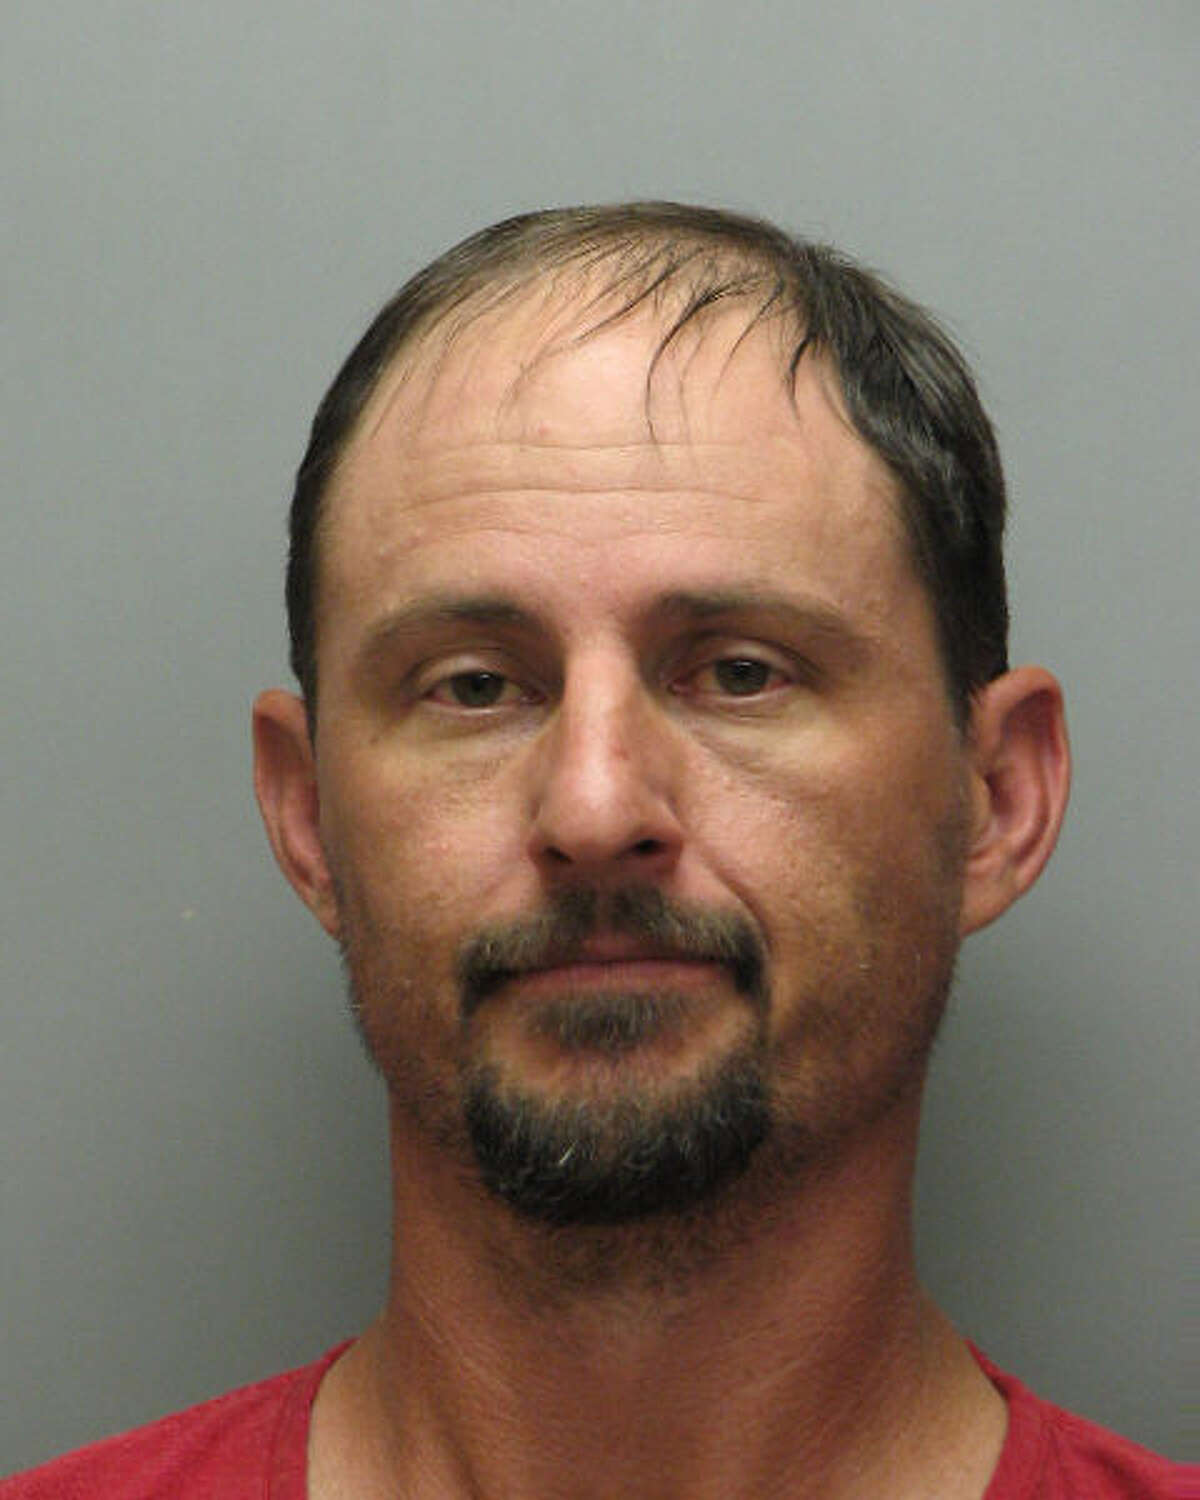 AP Photo / Lafourche Parish Sheriff Office This undated photo provided by the Lafourche Parish Sheriff's Office shows Ben Freeman. Freeman is the suspect in an attack that involved his former in-laws and the head of a hospital where he'd worked on Thursday, authorities said.